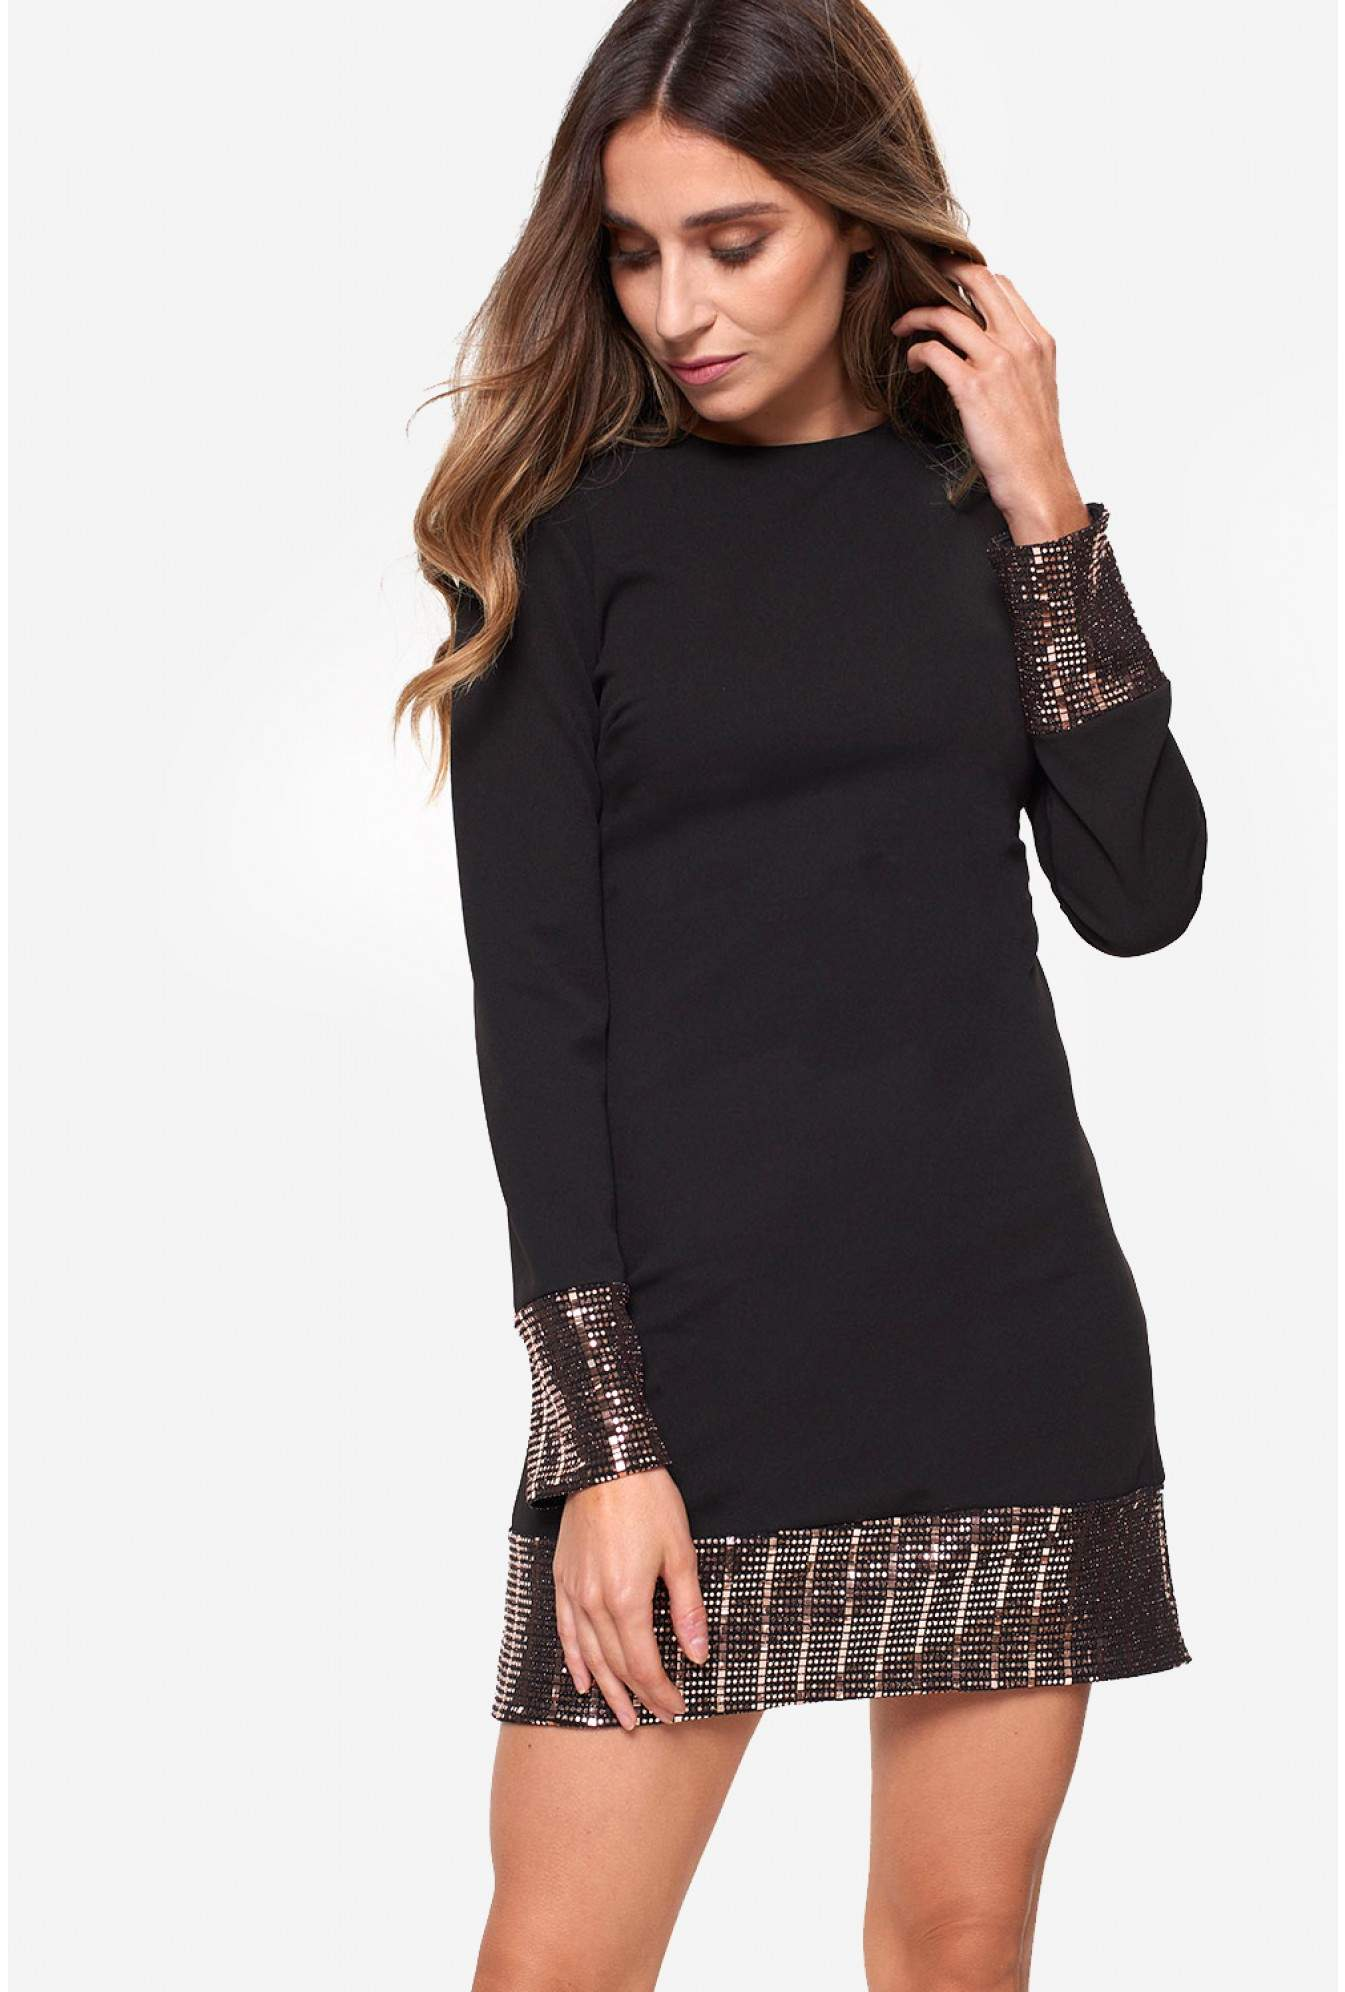 d70e7d2a4073 John Zack Tina Shift Dress with Sequin Detail in Black